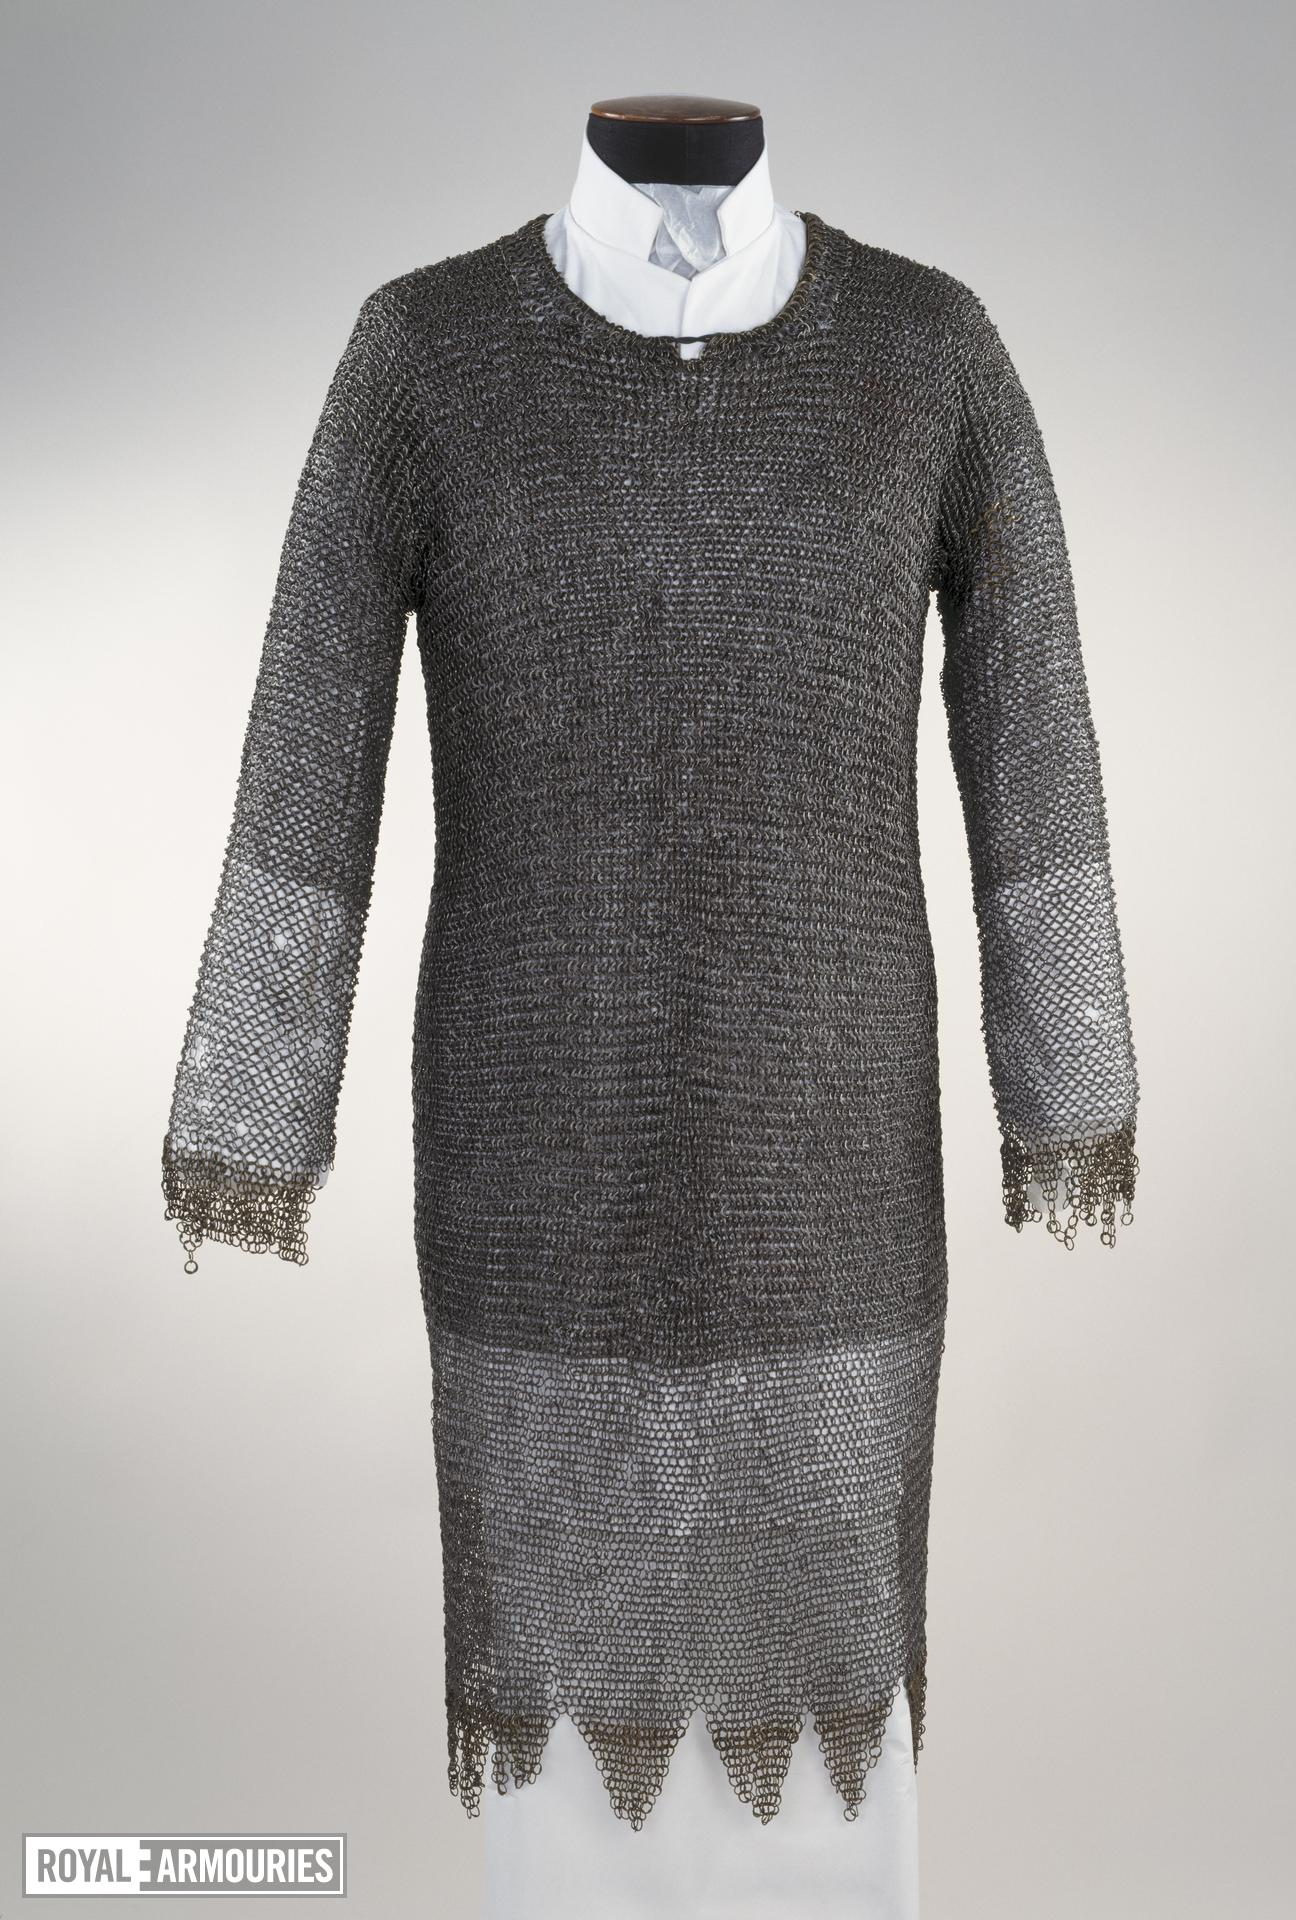 Mail shirt. European, 15th century (III.5)